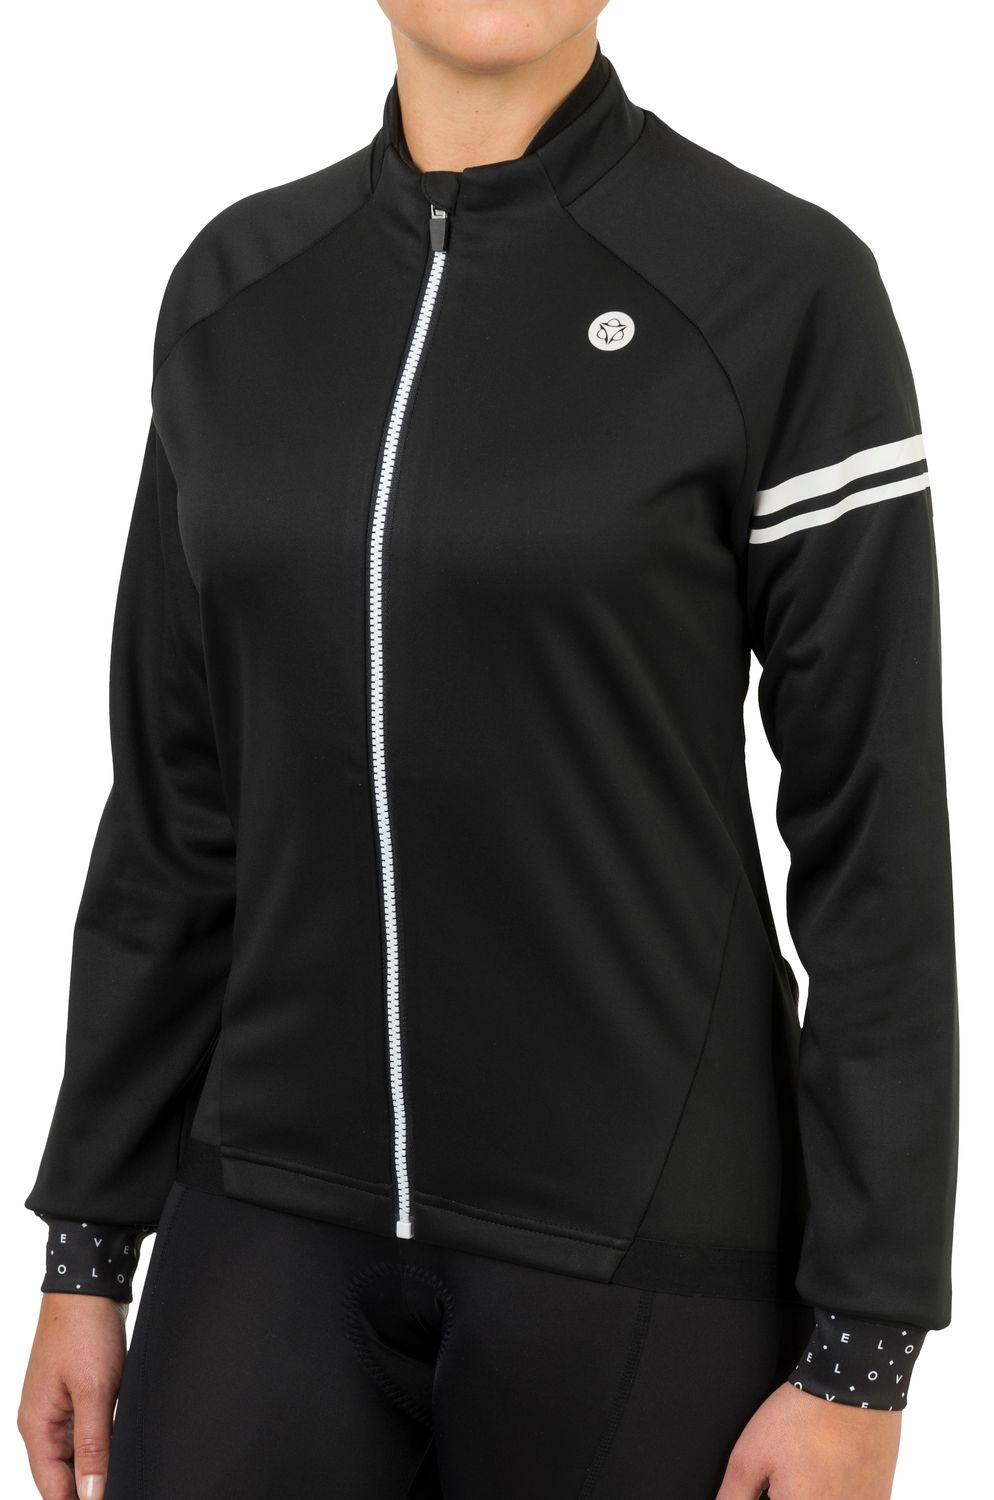 Winter Thermojack Essential Dames fit example